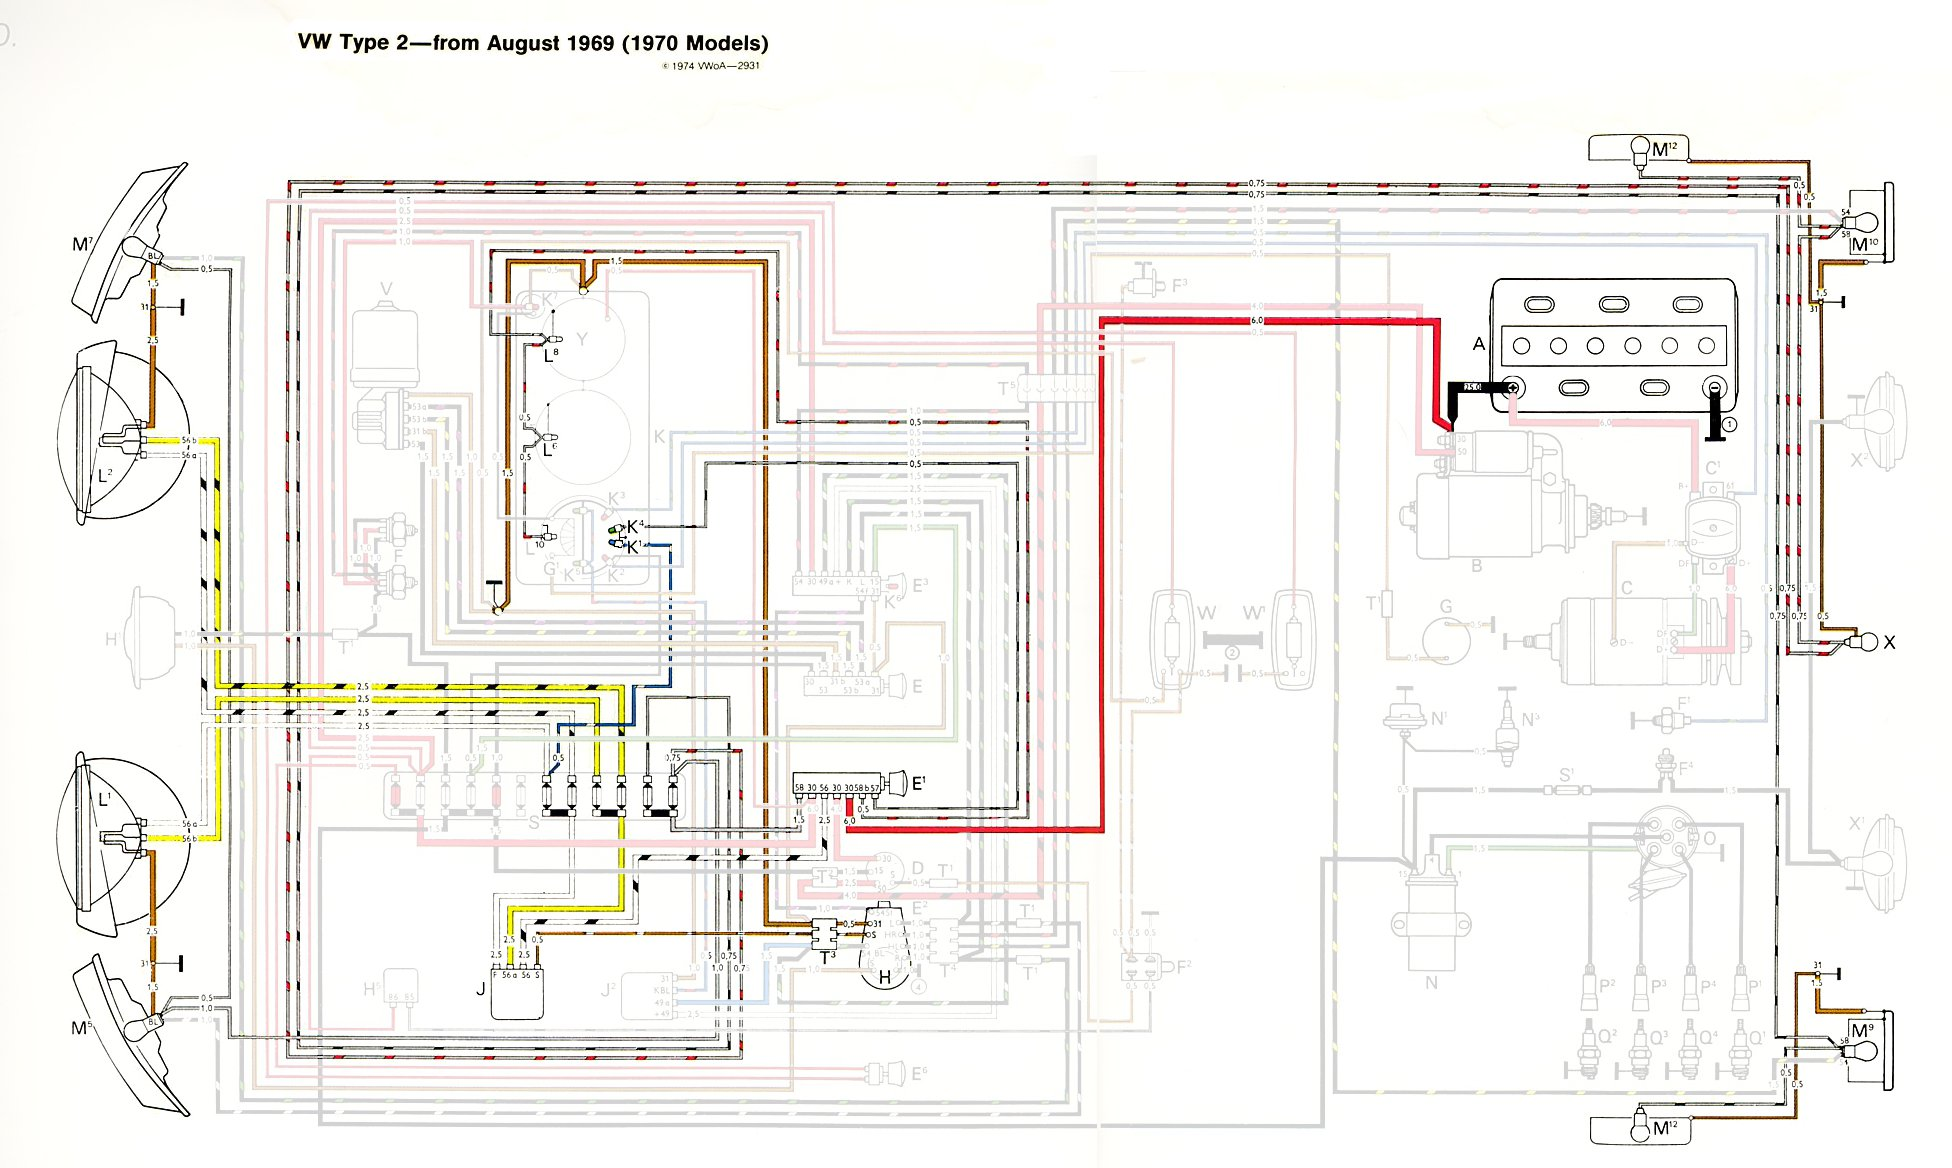 1971 Cadillac Vacuum Line Diagram Headlights Wiring